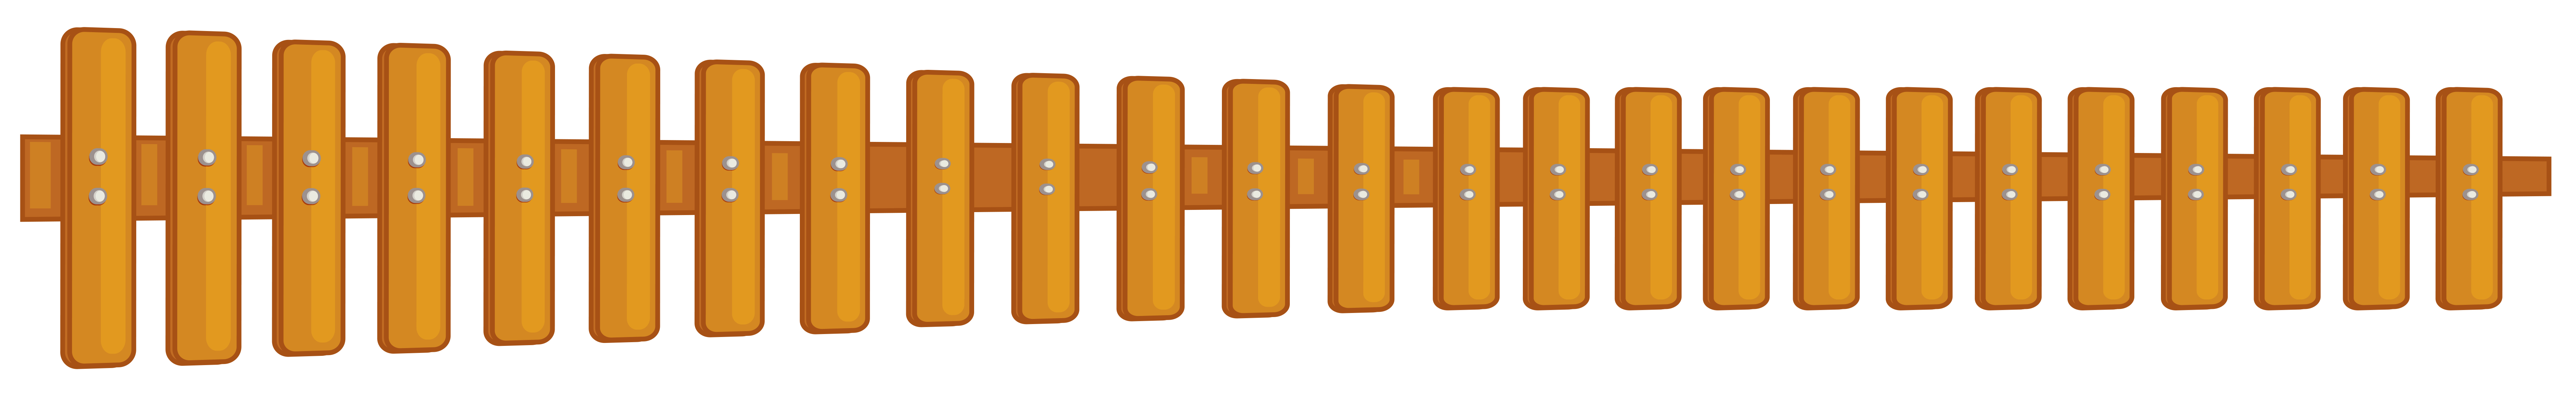 Wooden Fence Png Clipart Clipart Fence Png Wooden Clipartclipart Fence Png Clipartclipart Fence Png Wooden Wooden Fence Fence Modern Garden Design